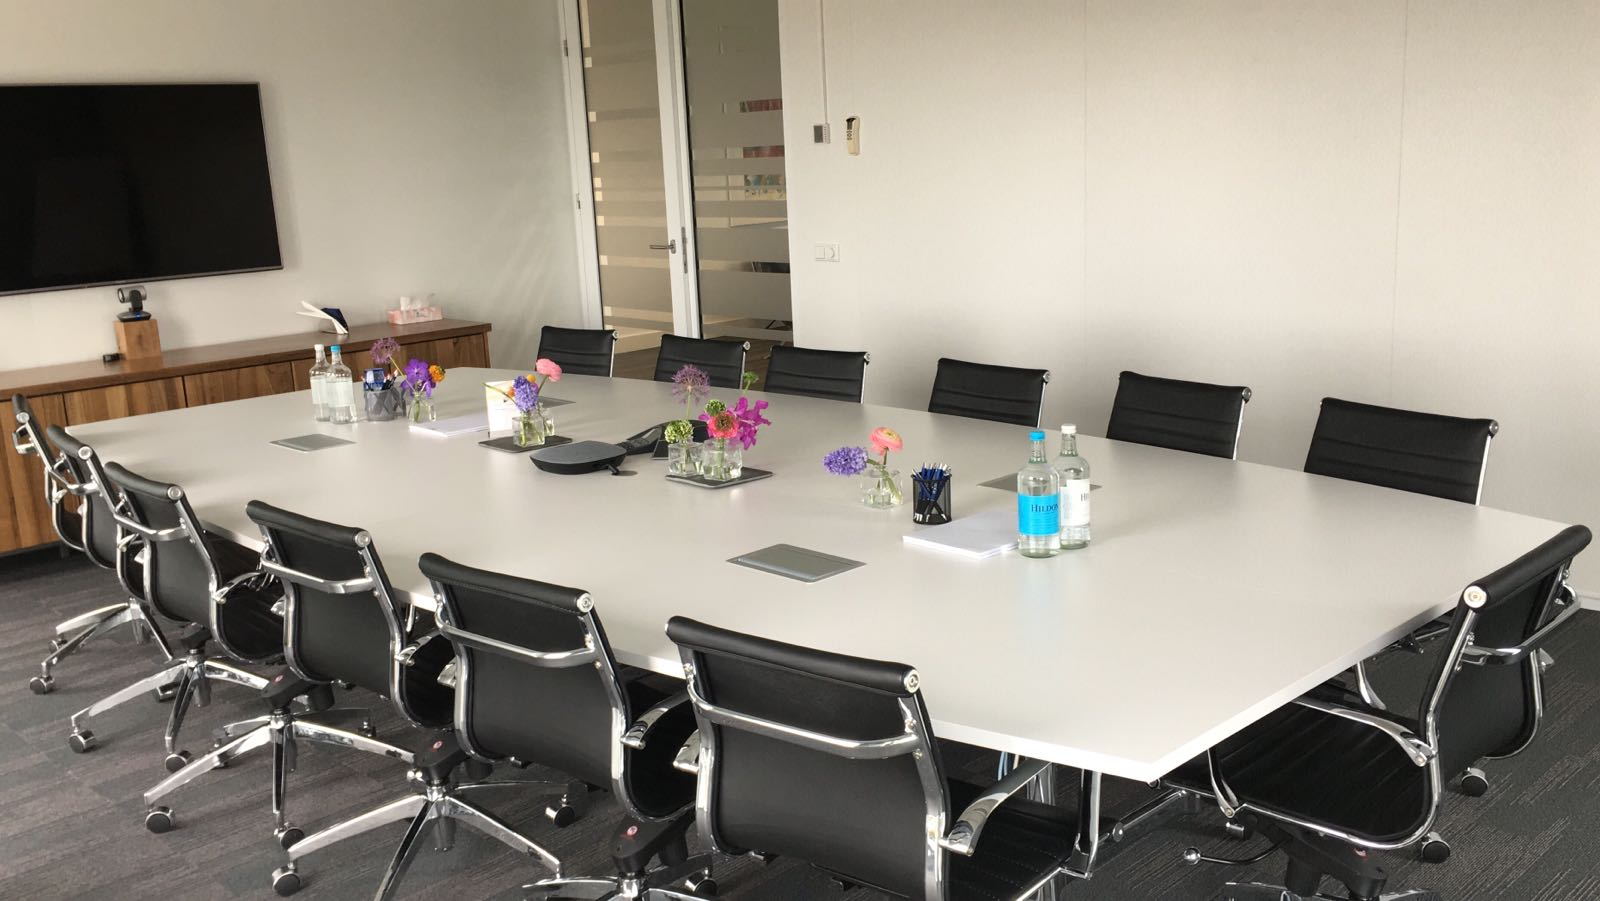 Office furniture meeting table